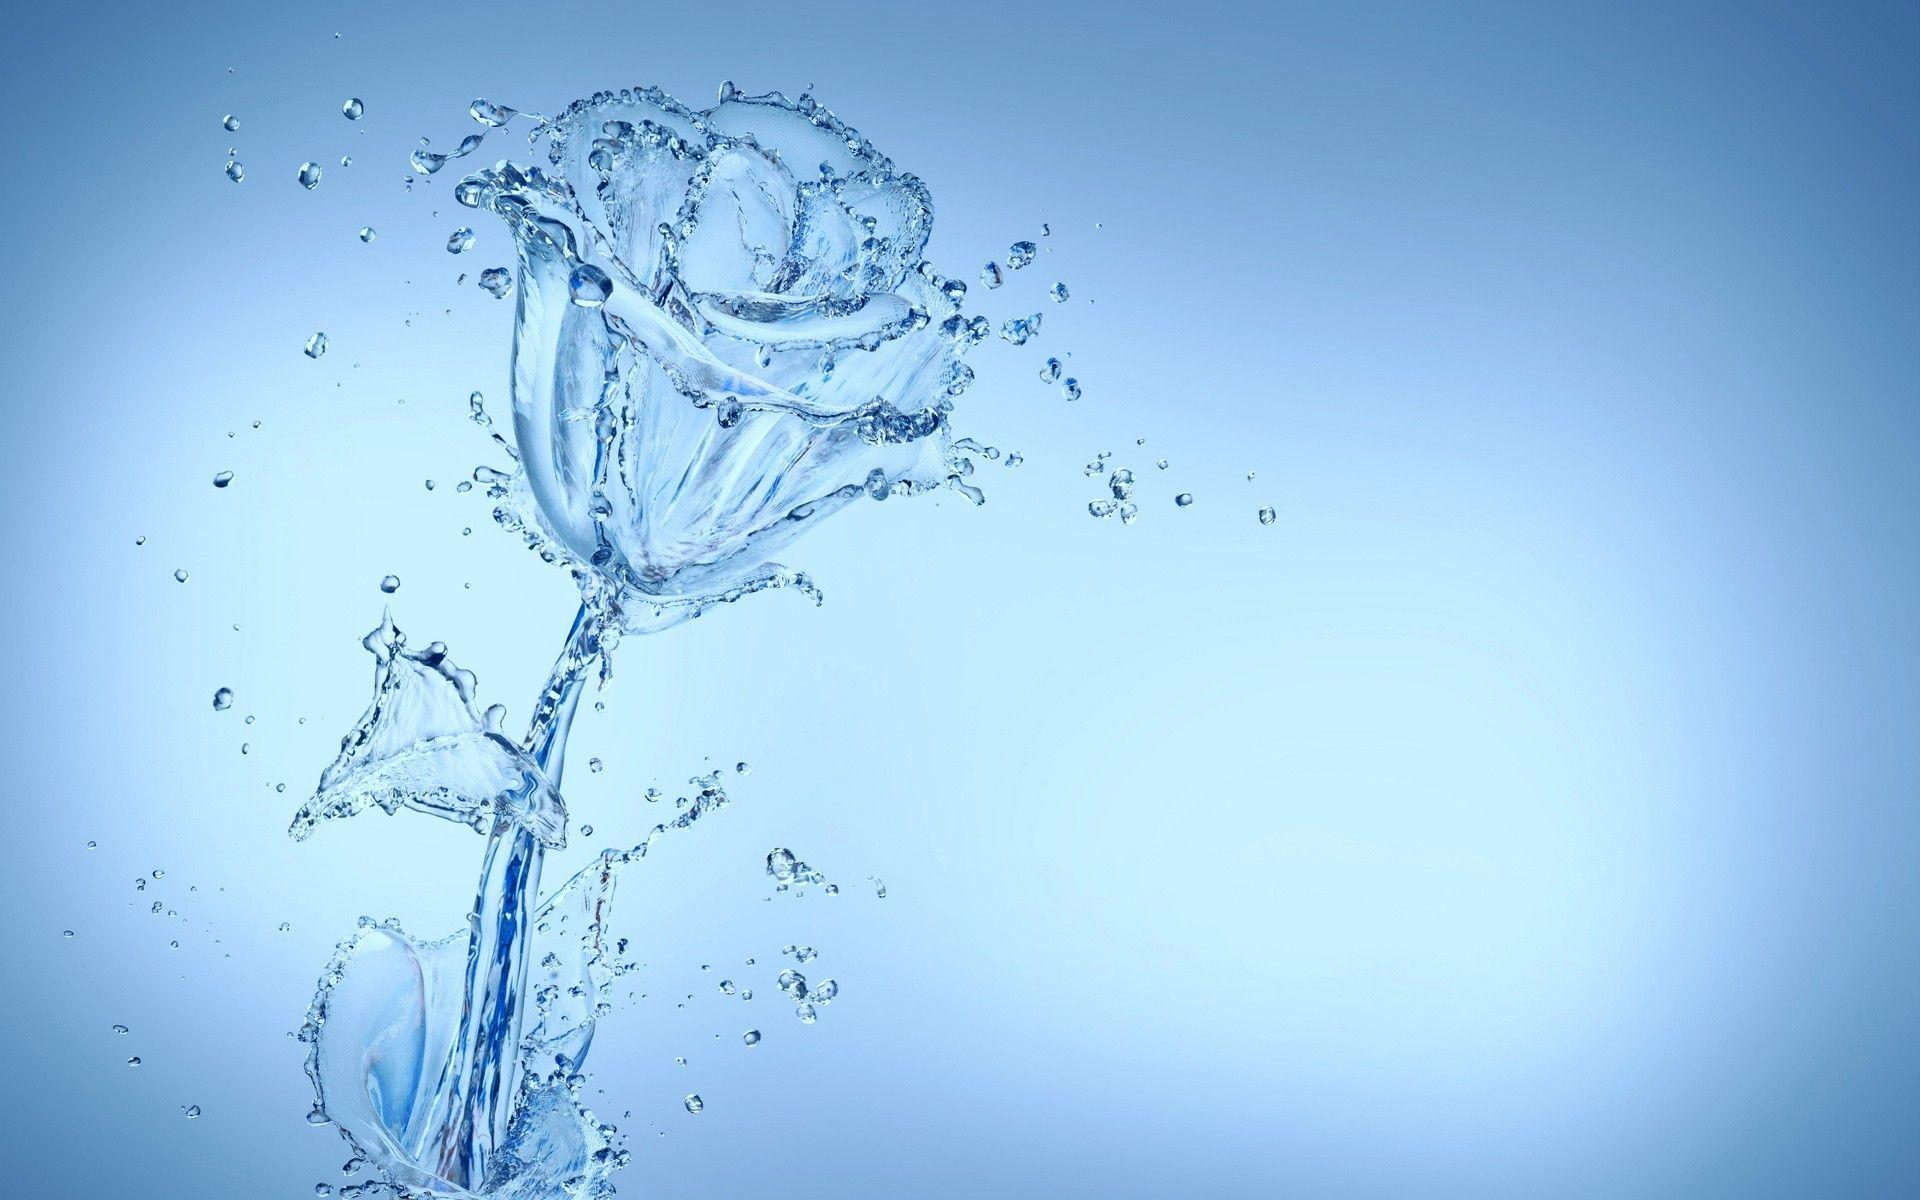 Cool Water Flower Wallpaper 37544 1920x1200 px ~ HDWallSource.com